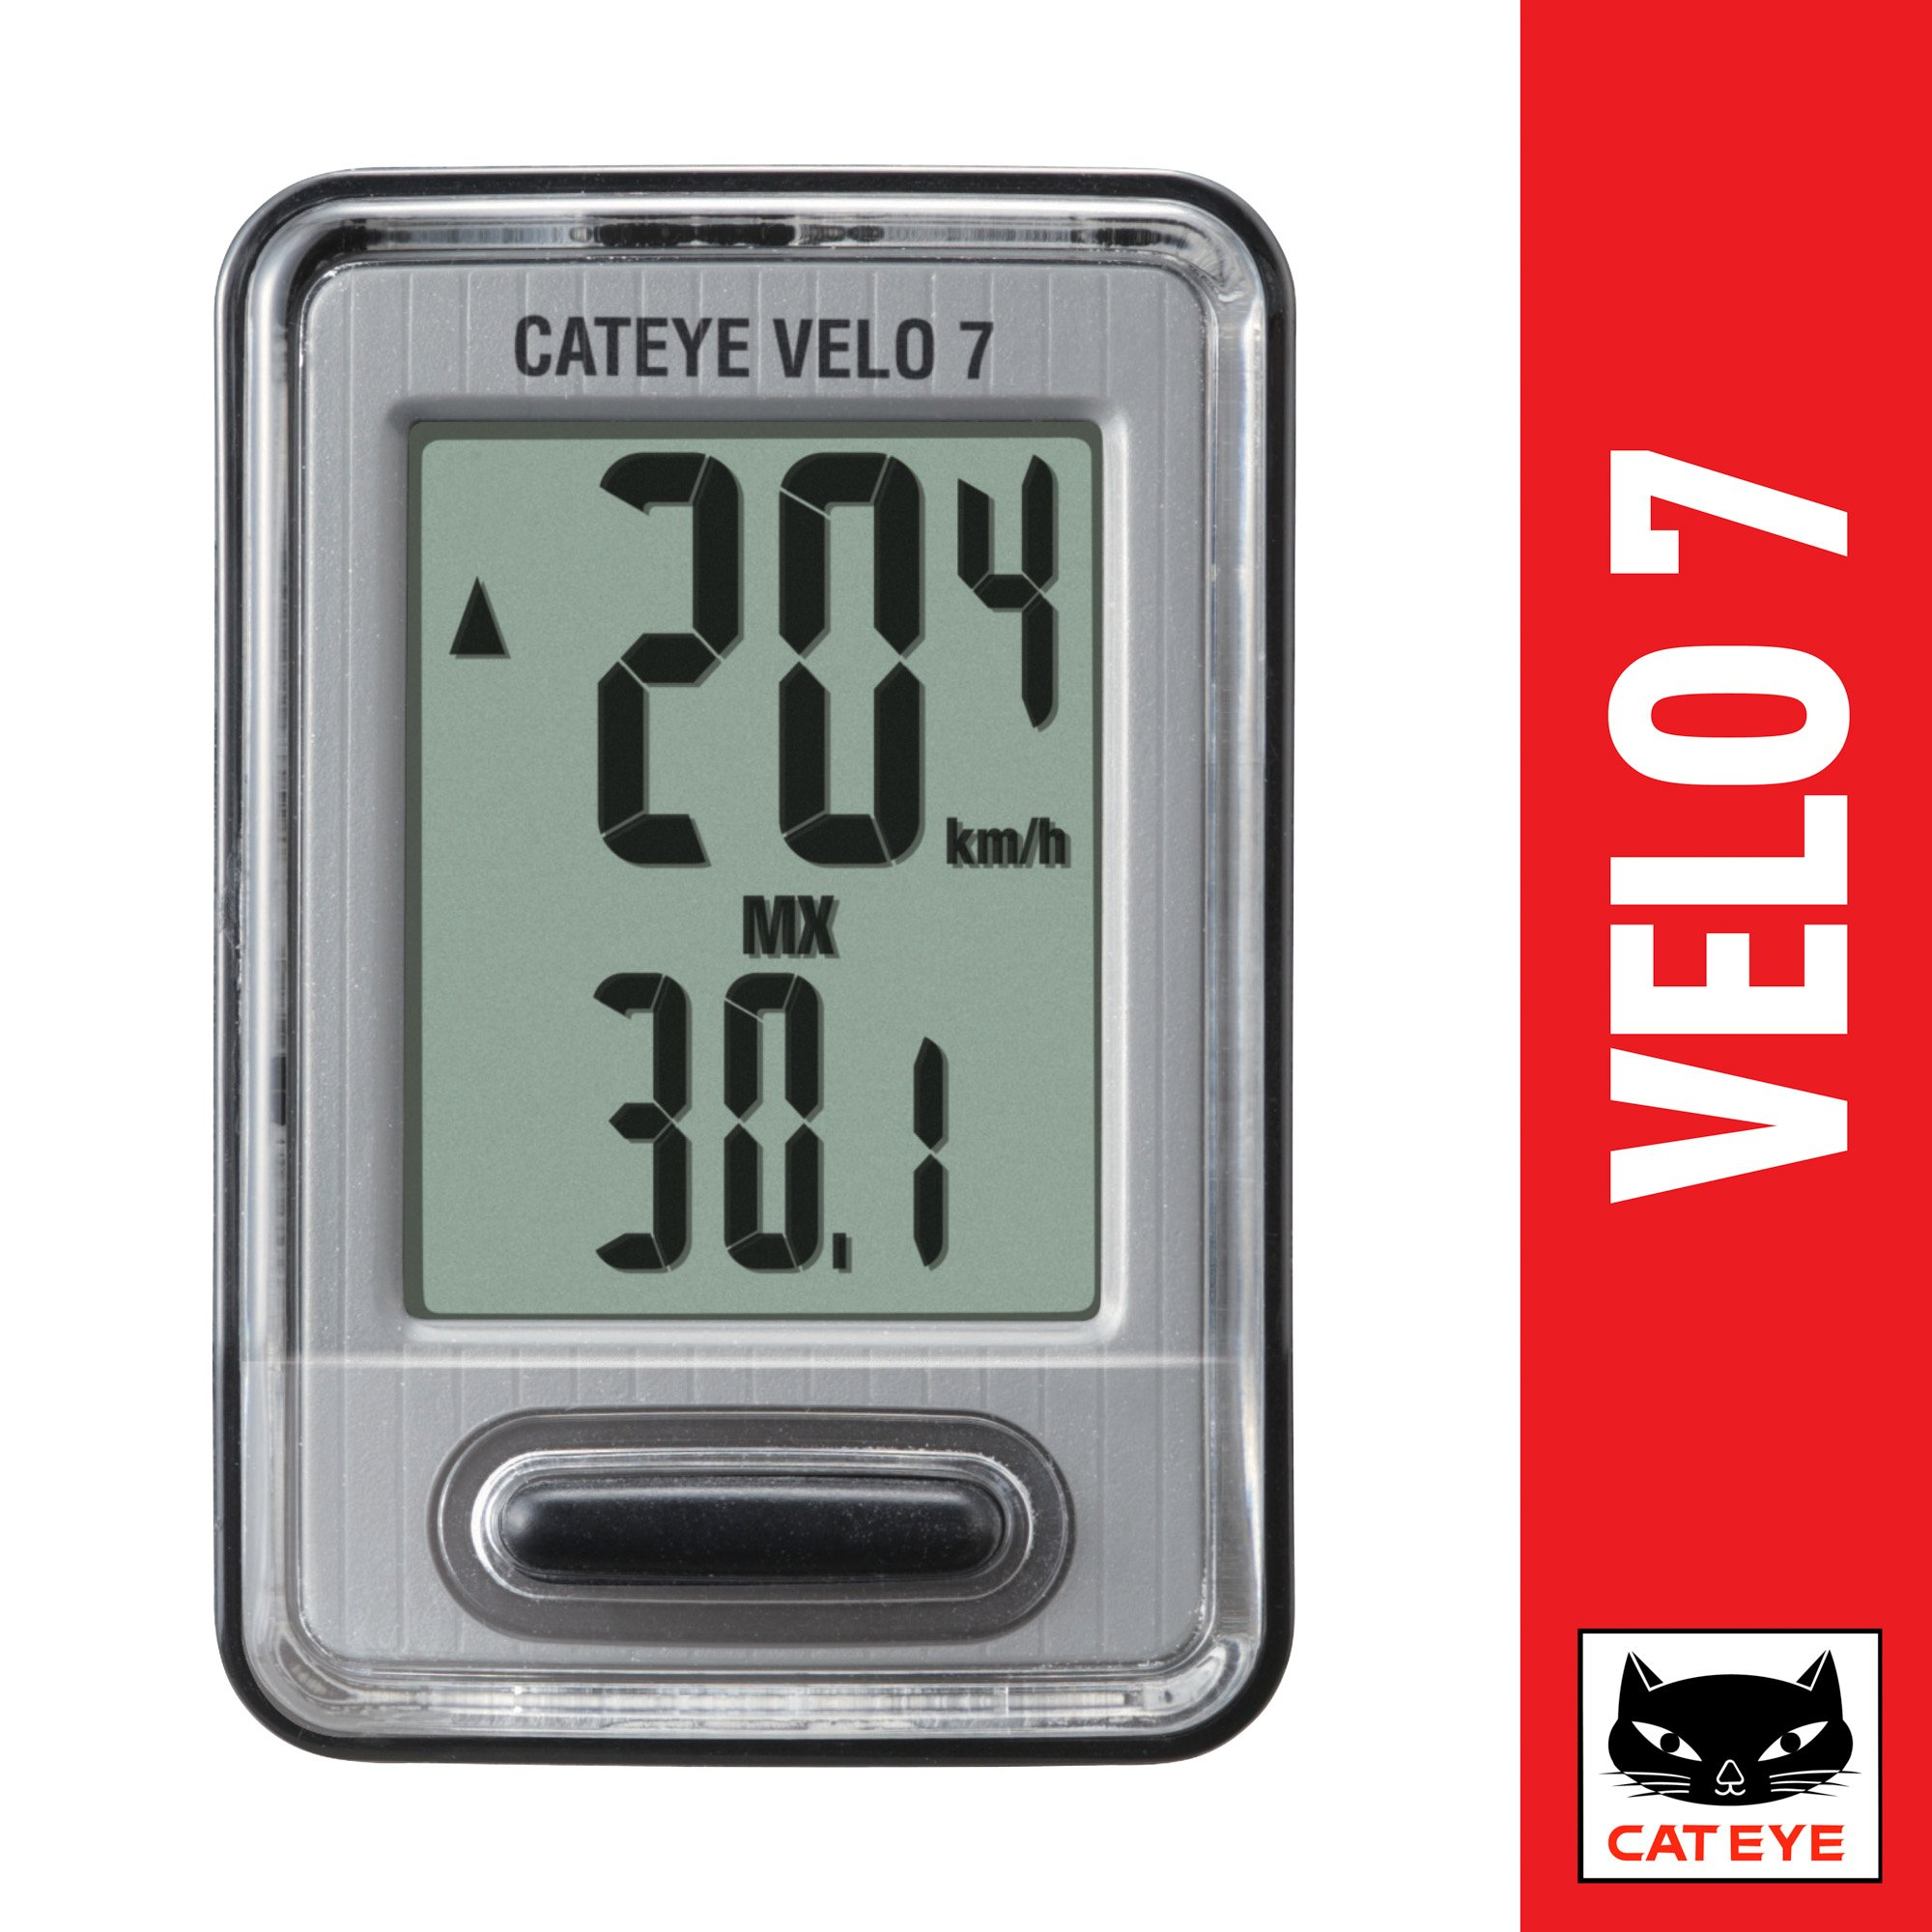 Cheap Cateye Velo 7 Wireless Find Deals On Spidometer Strada Cadence Get Quotations Cyclocomputer